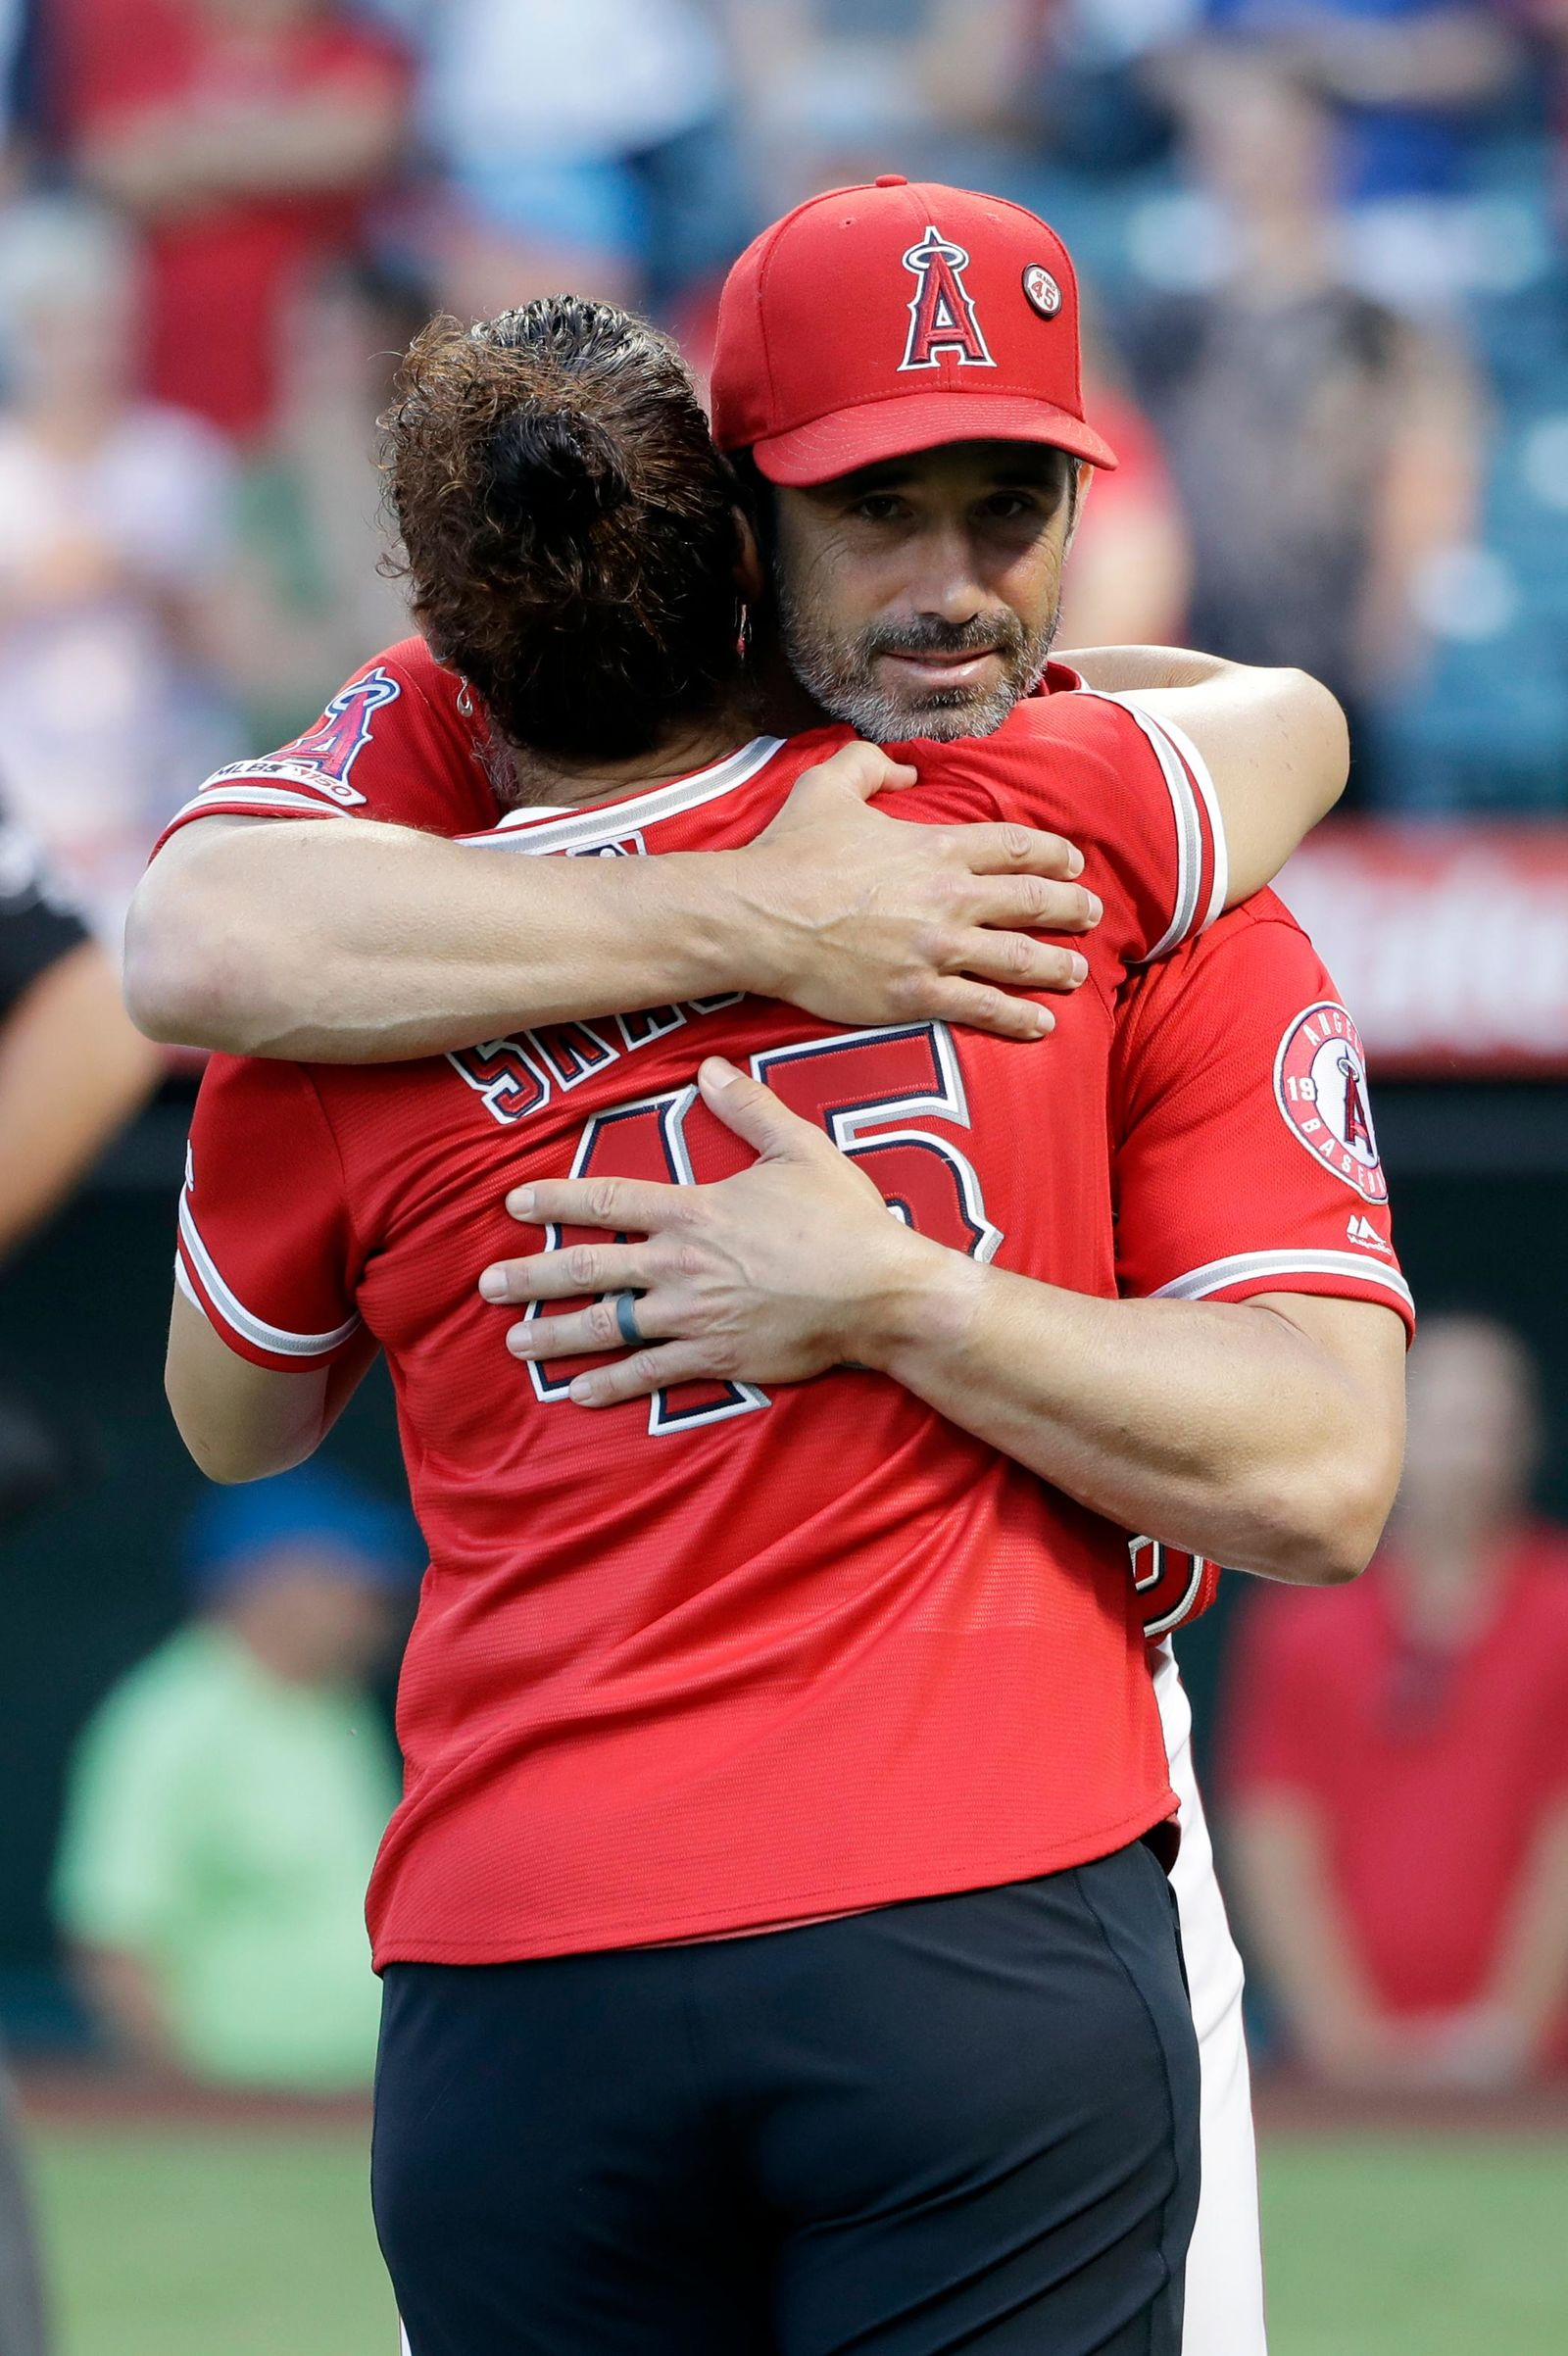 Los Angeles Angels manager Brad Ausmus, facing camera, hugs the late pitcher Tyler Skaggs' mother, Debbie Hetman, before the team's baseball game against the Seattle Mariners on Friday, July 12, 2019, in Anaheim, Calif. (AP Photo/Marcio Jose Sanchez)